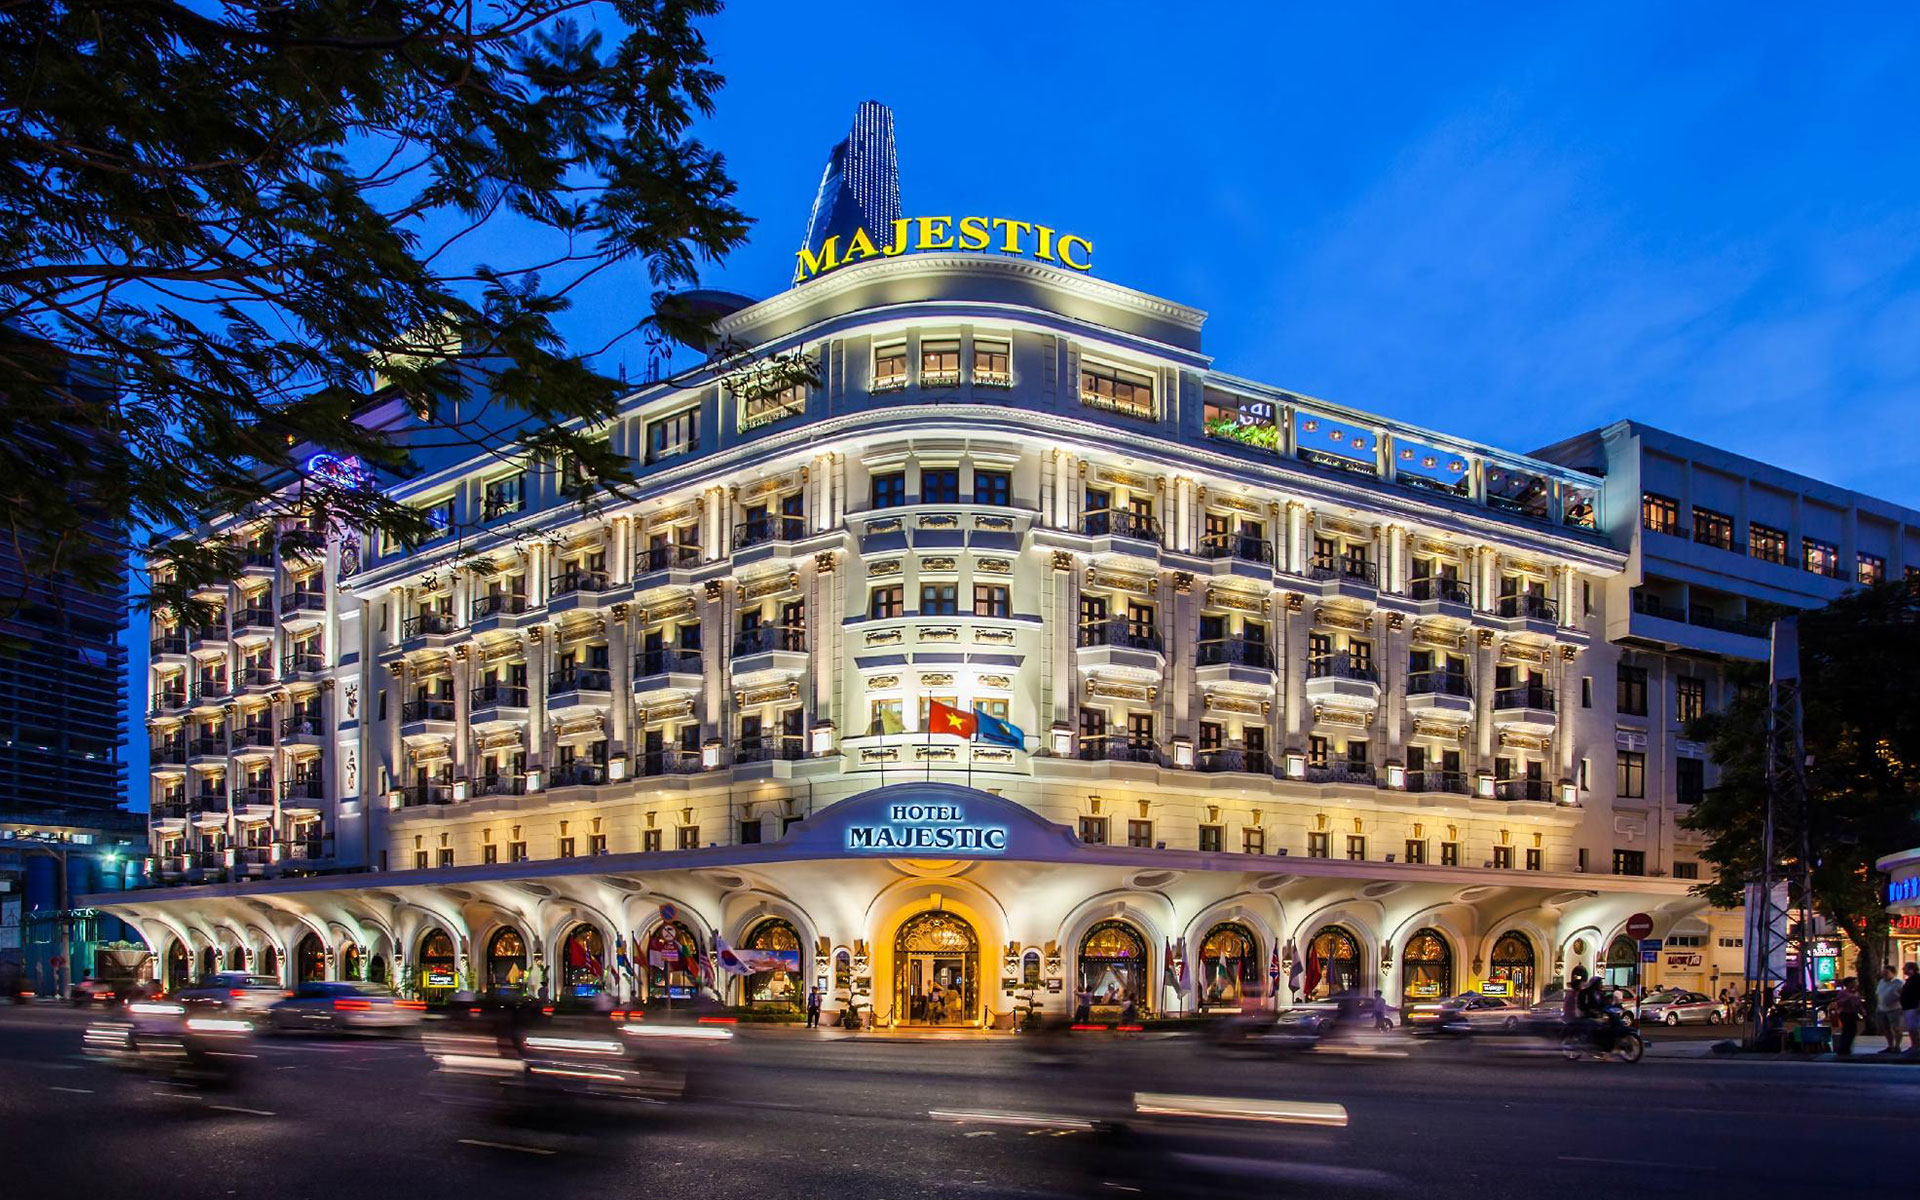 Hotel Majestic Saigon - one of the oldest 5 star hotels in Ho Chi Minh City